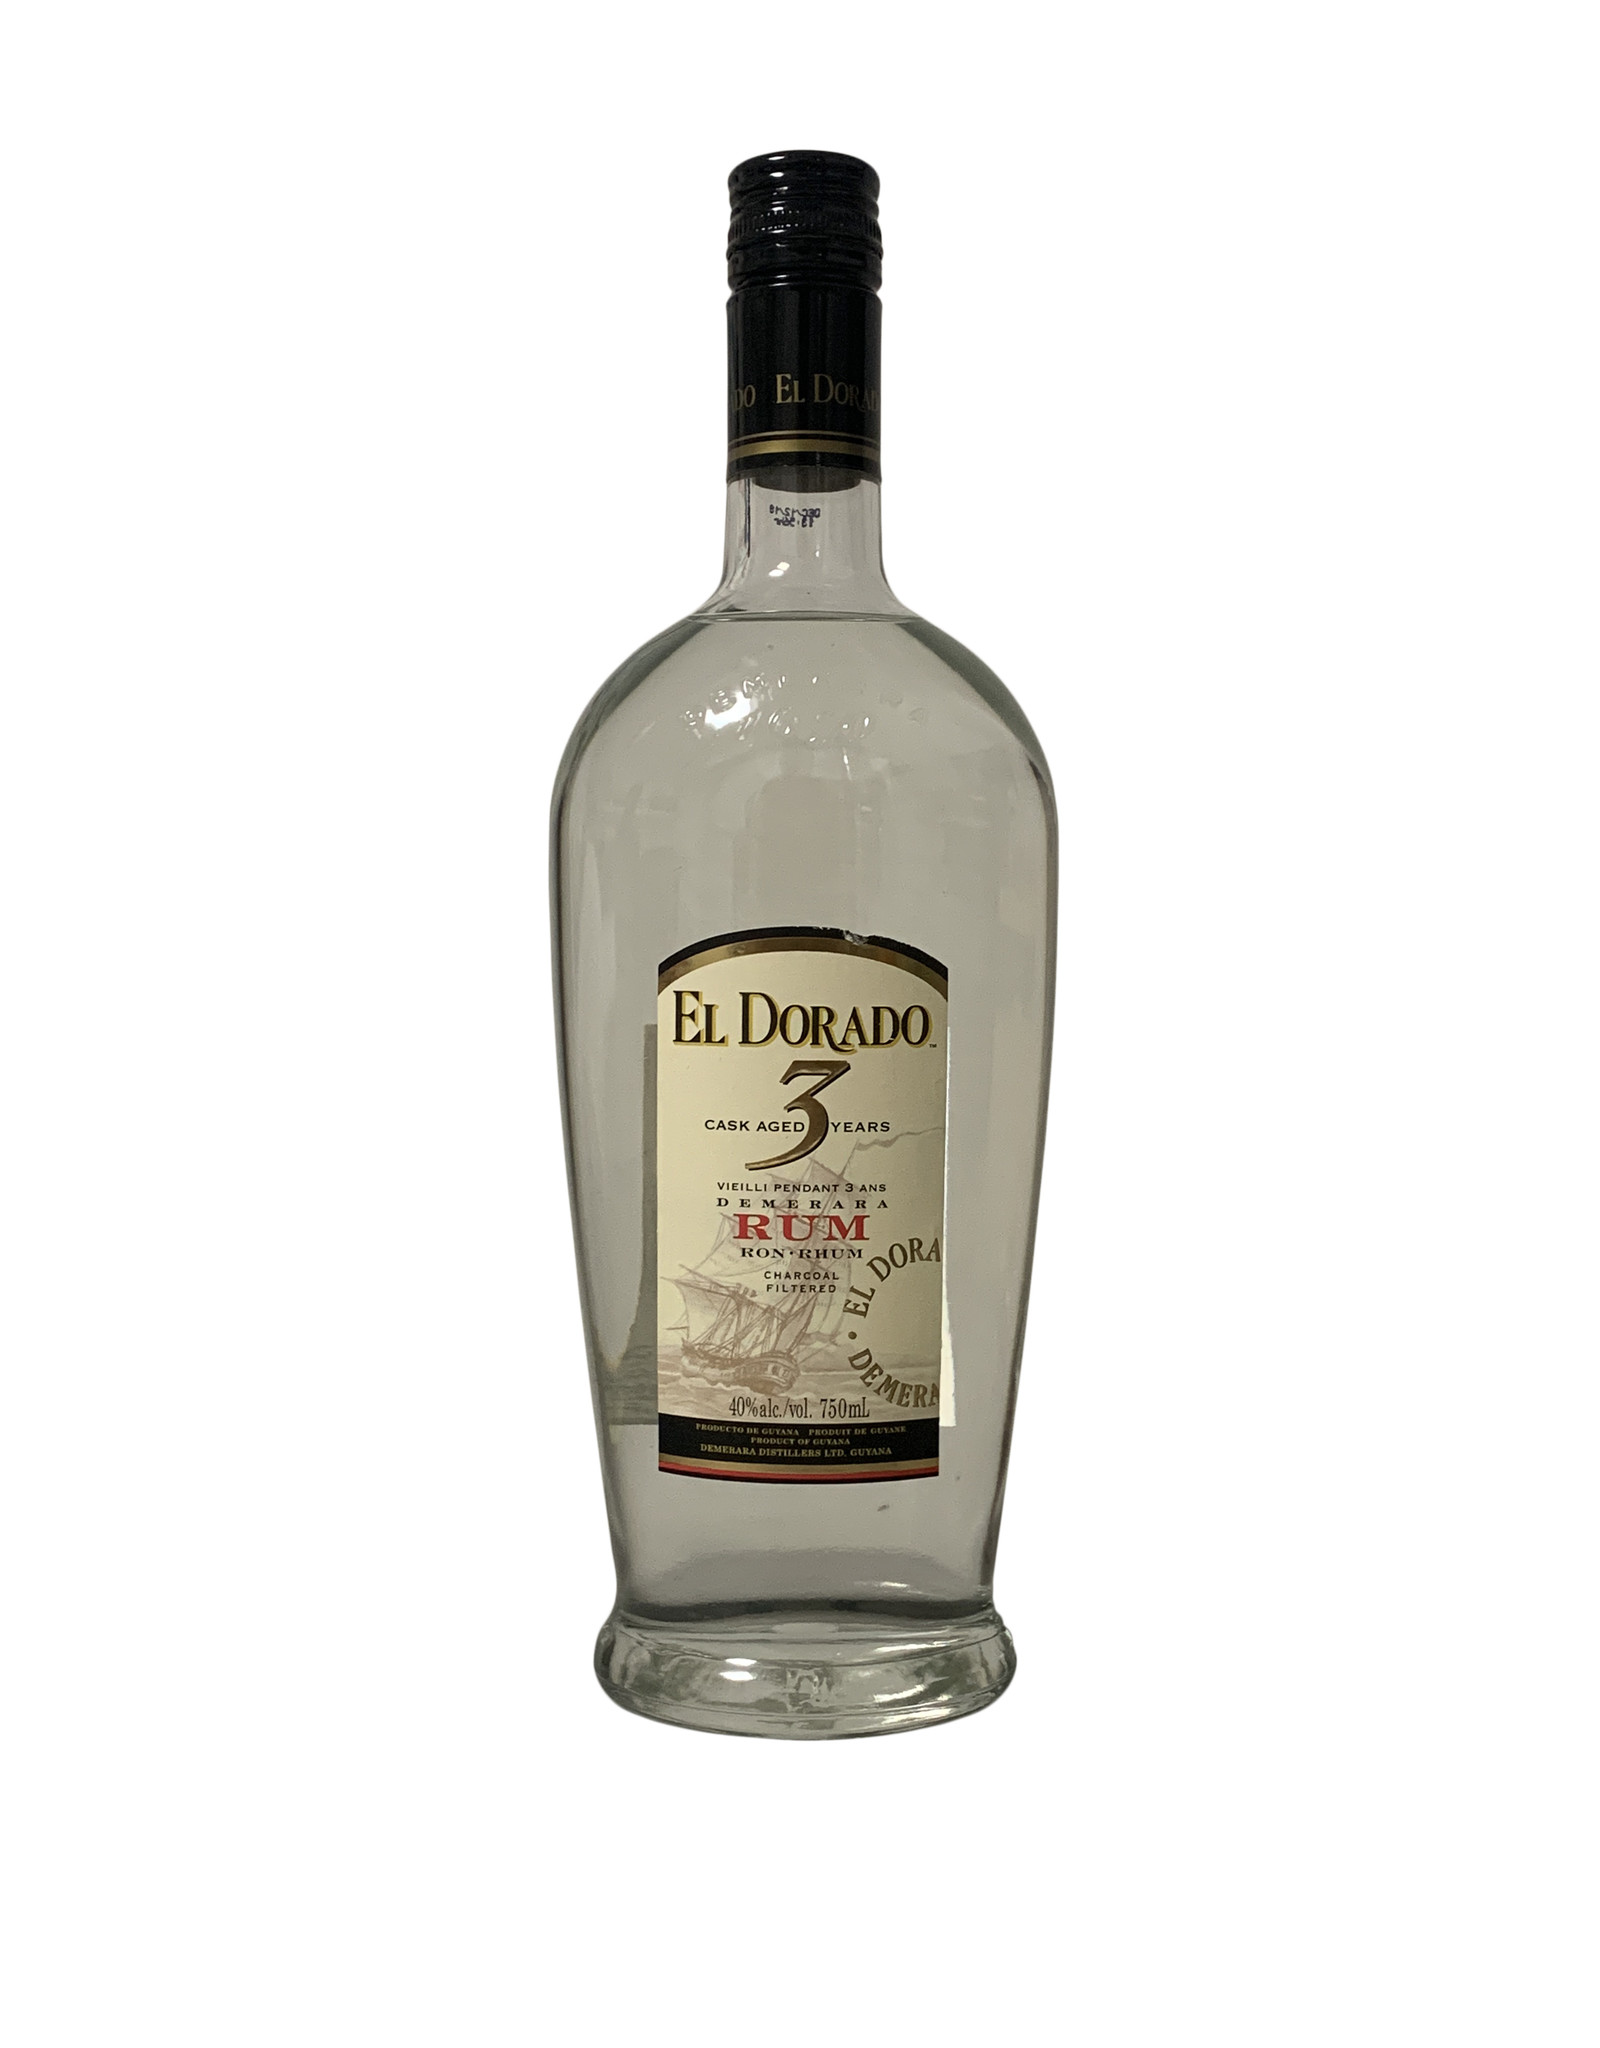 El Dorado El Dorado 3 Year Old Cask Aged Demerara Rum 80 Proof, Guyana (750mL)